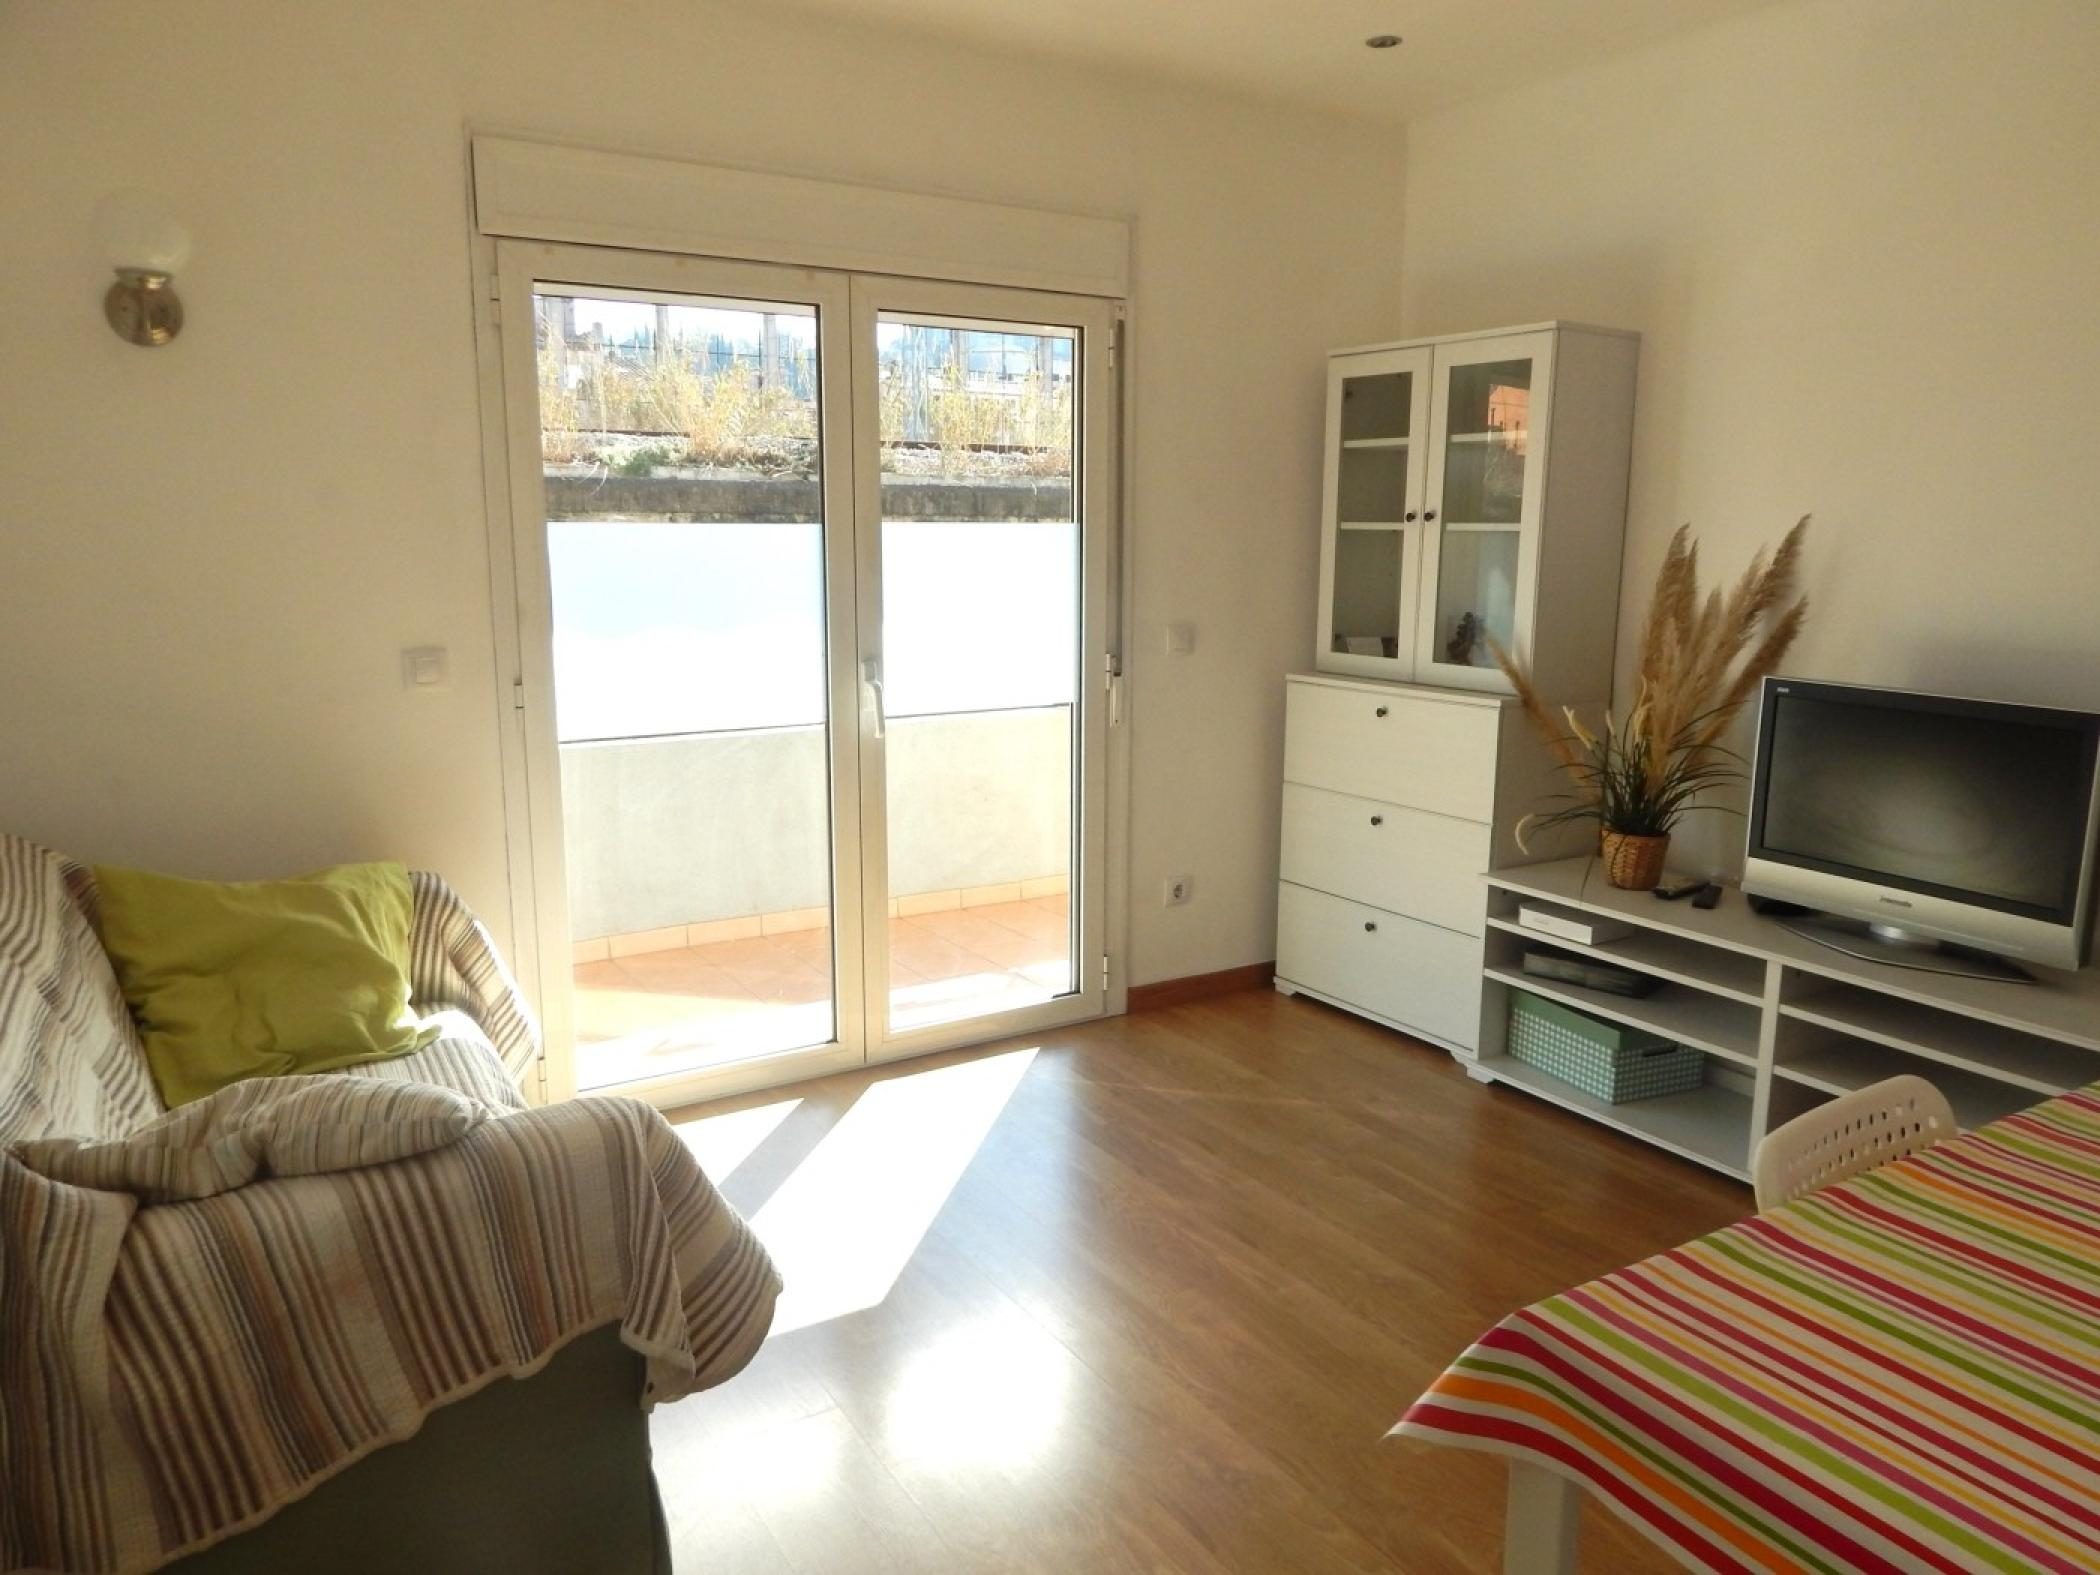 Spacious holiday apartment with 3 bedrooms, fully equipped kitchen and dining room with balcony